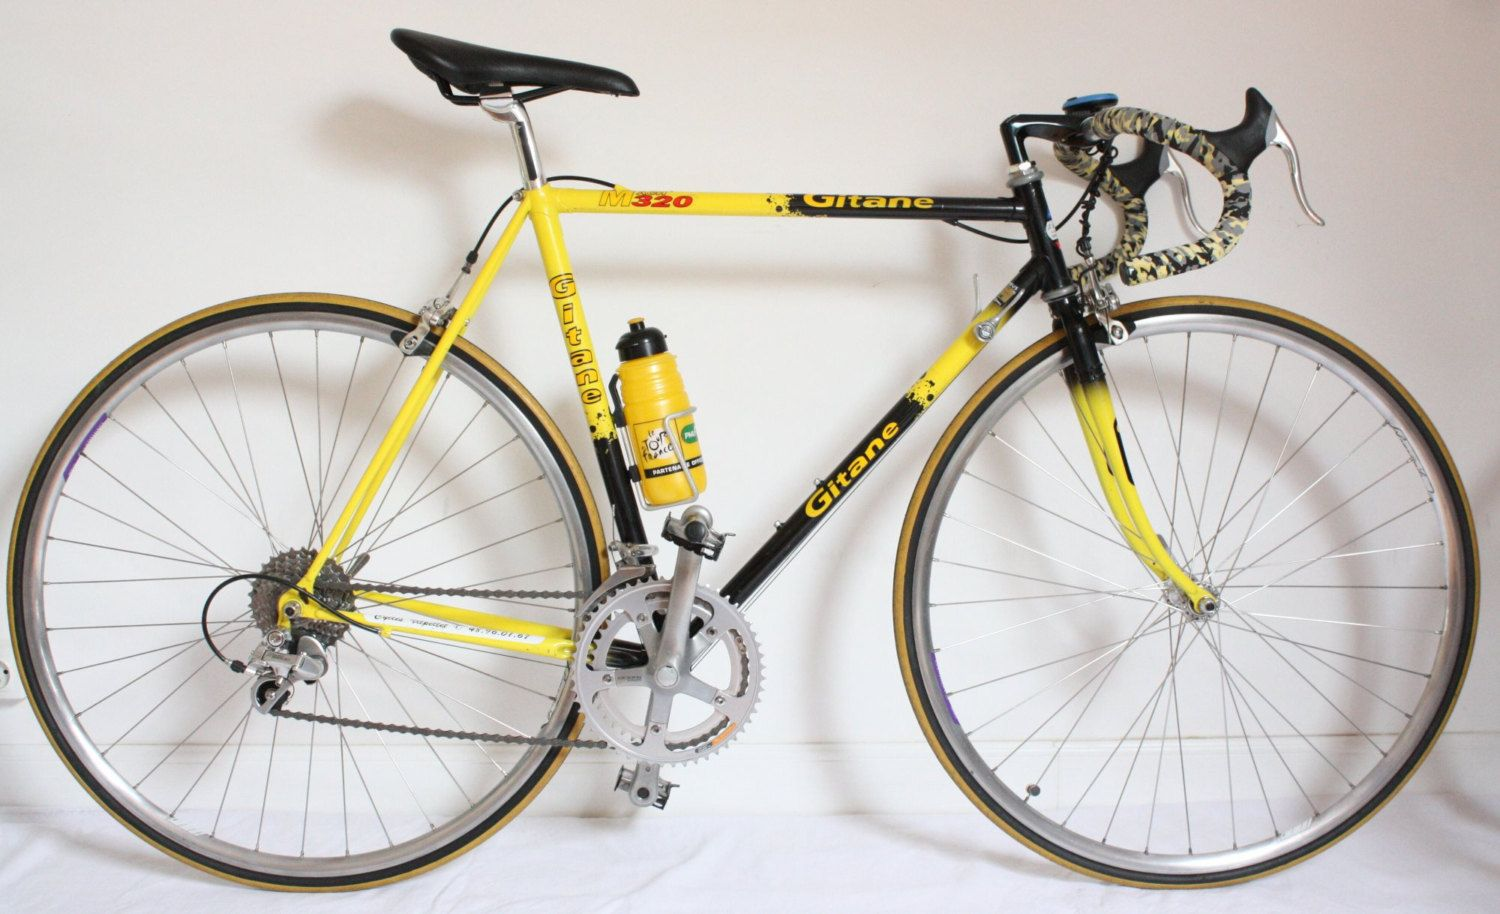 Gitane Mach 320 165 Great Bikes For Sale At Frenchpedalpower